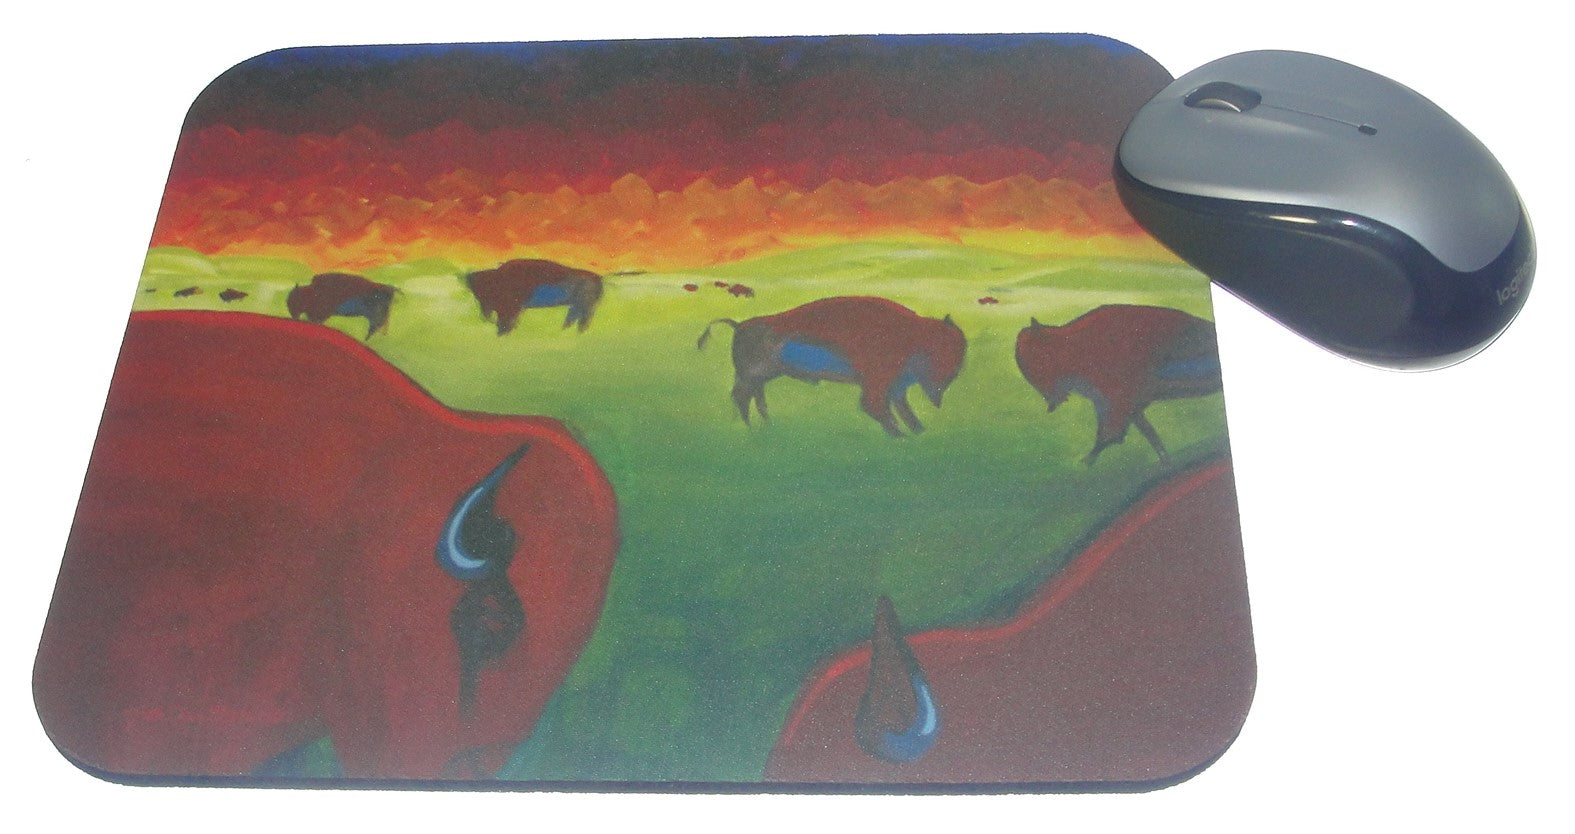 Mouse Pad, Bison on the Prairie